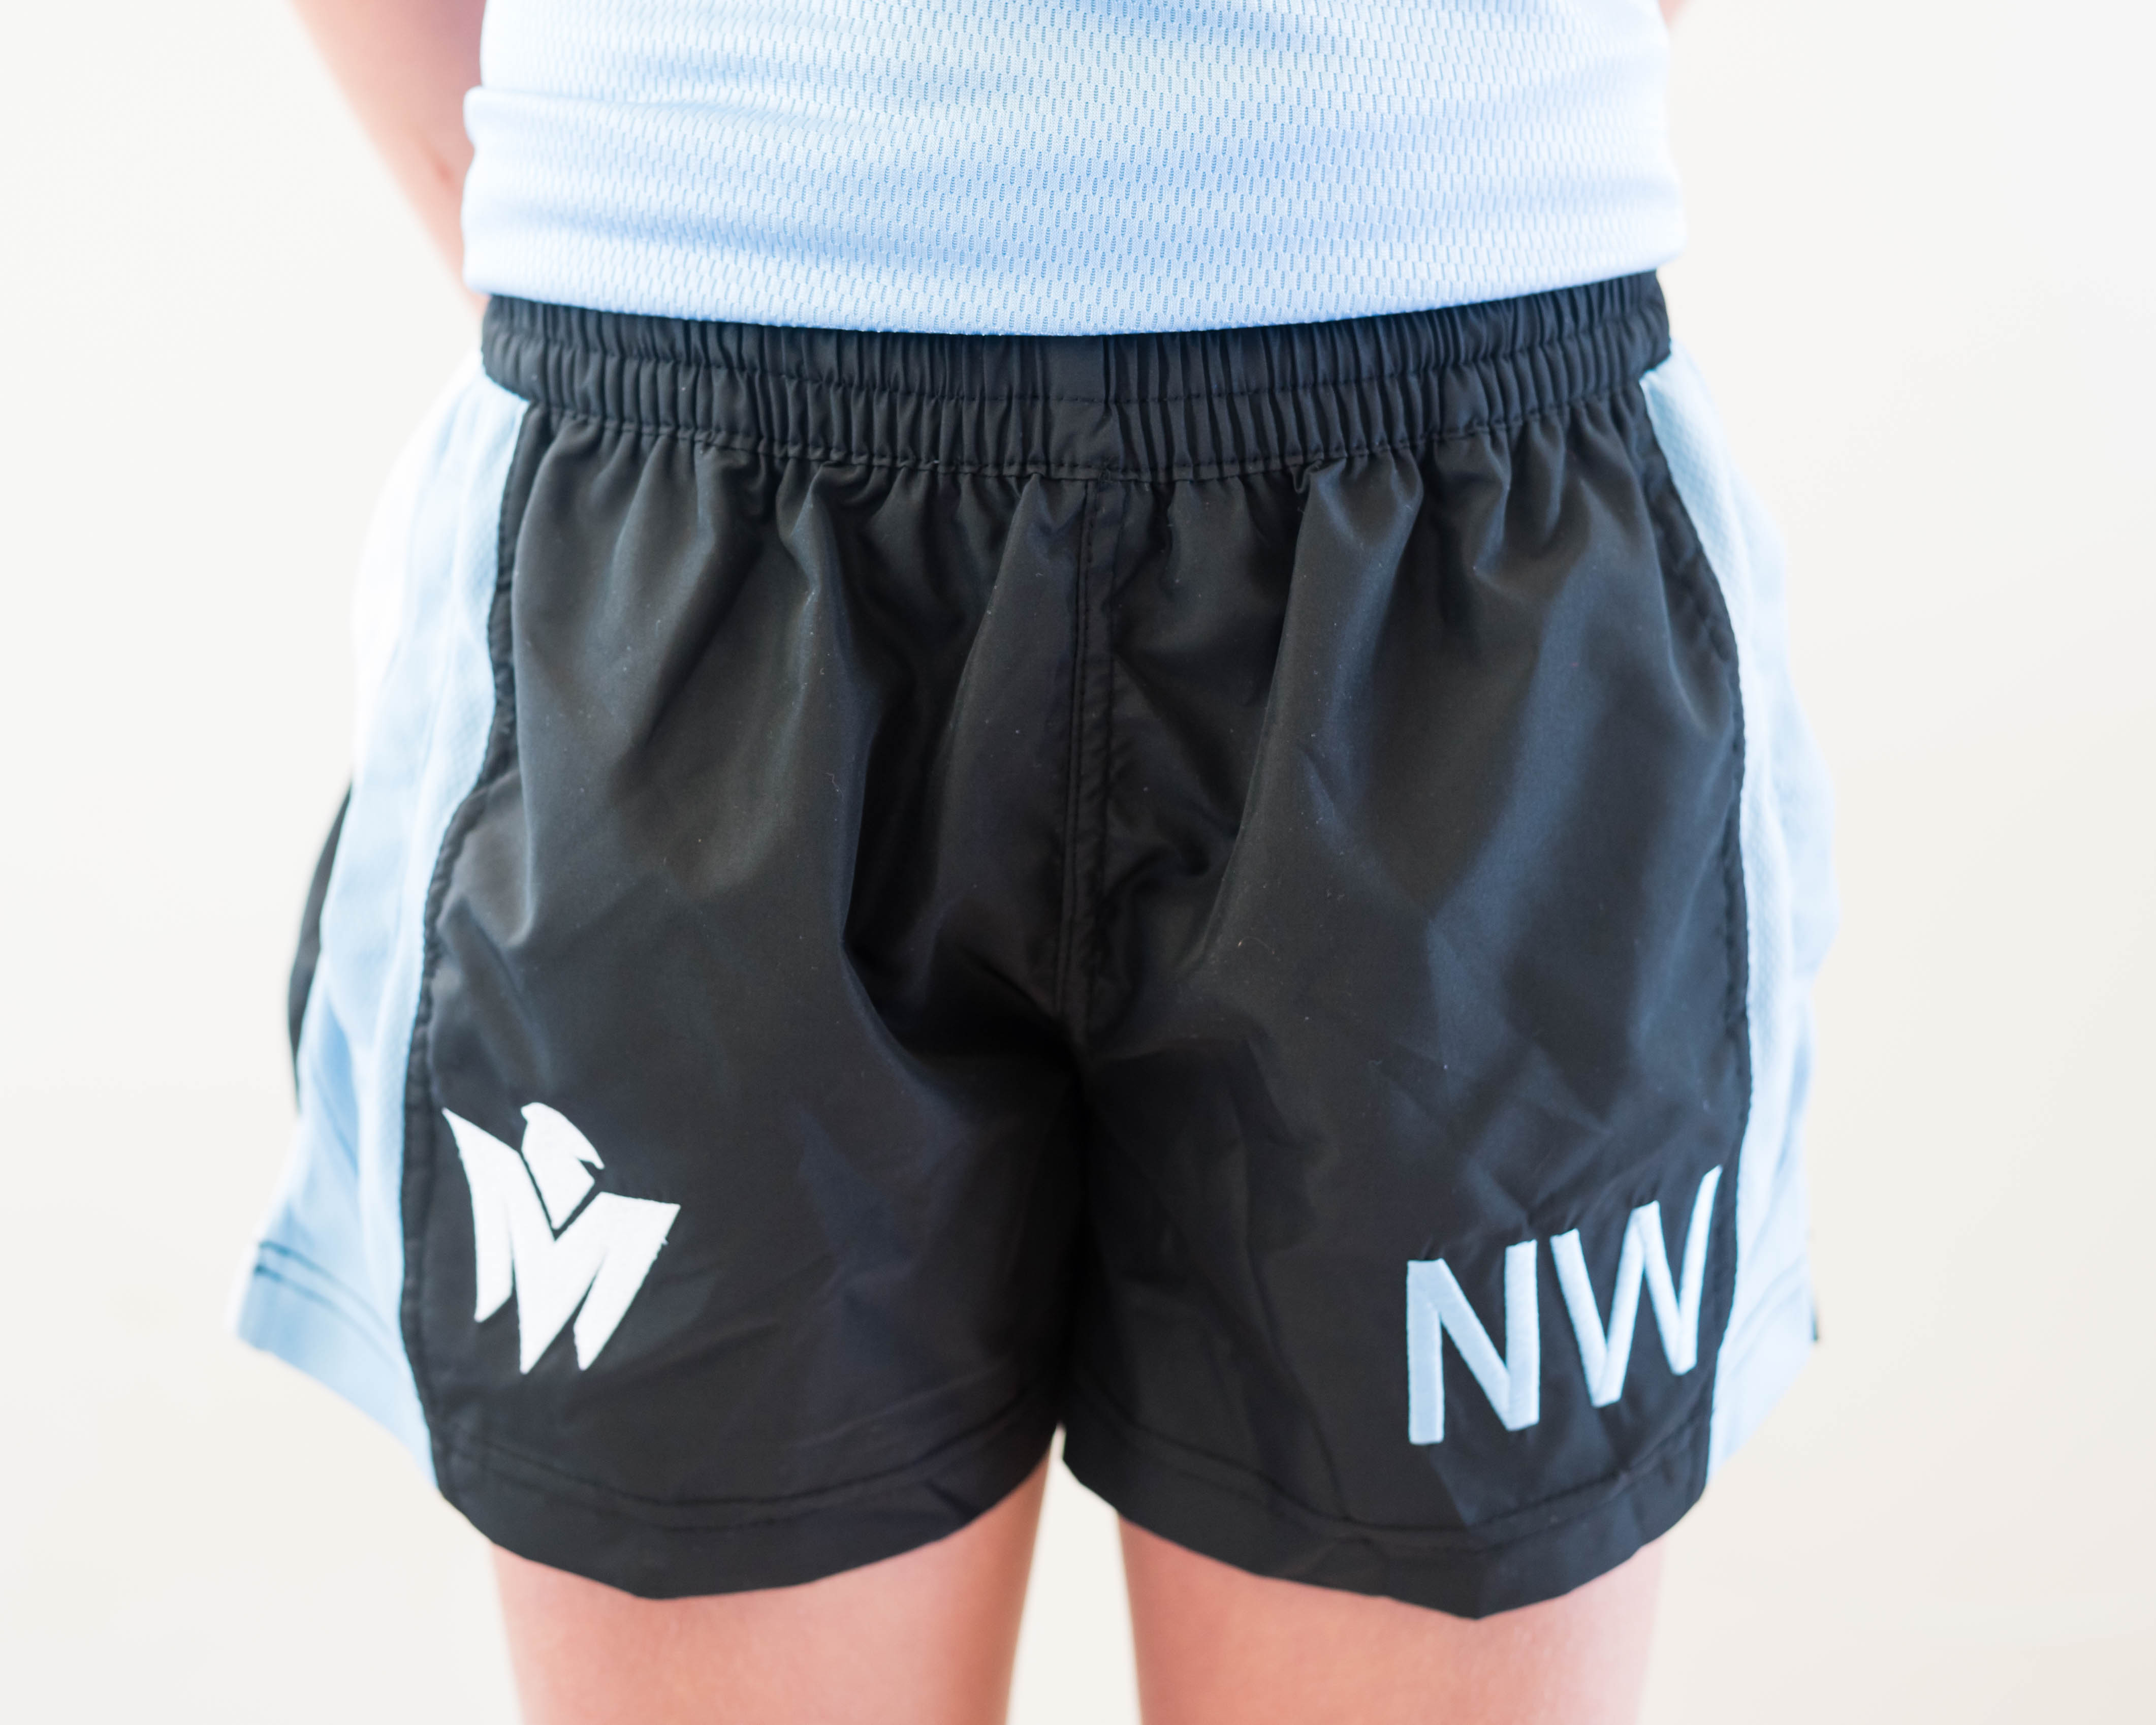 NW sport shorts